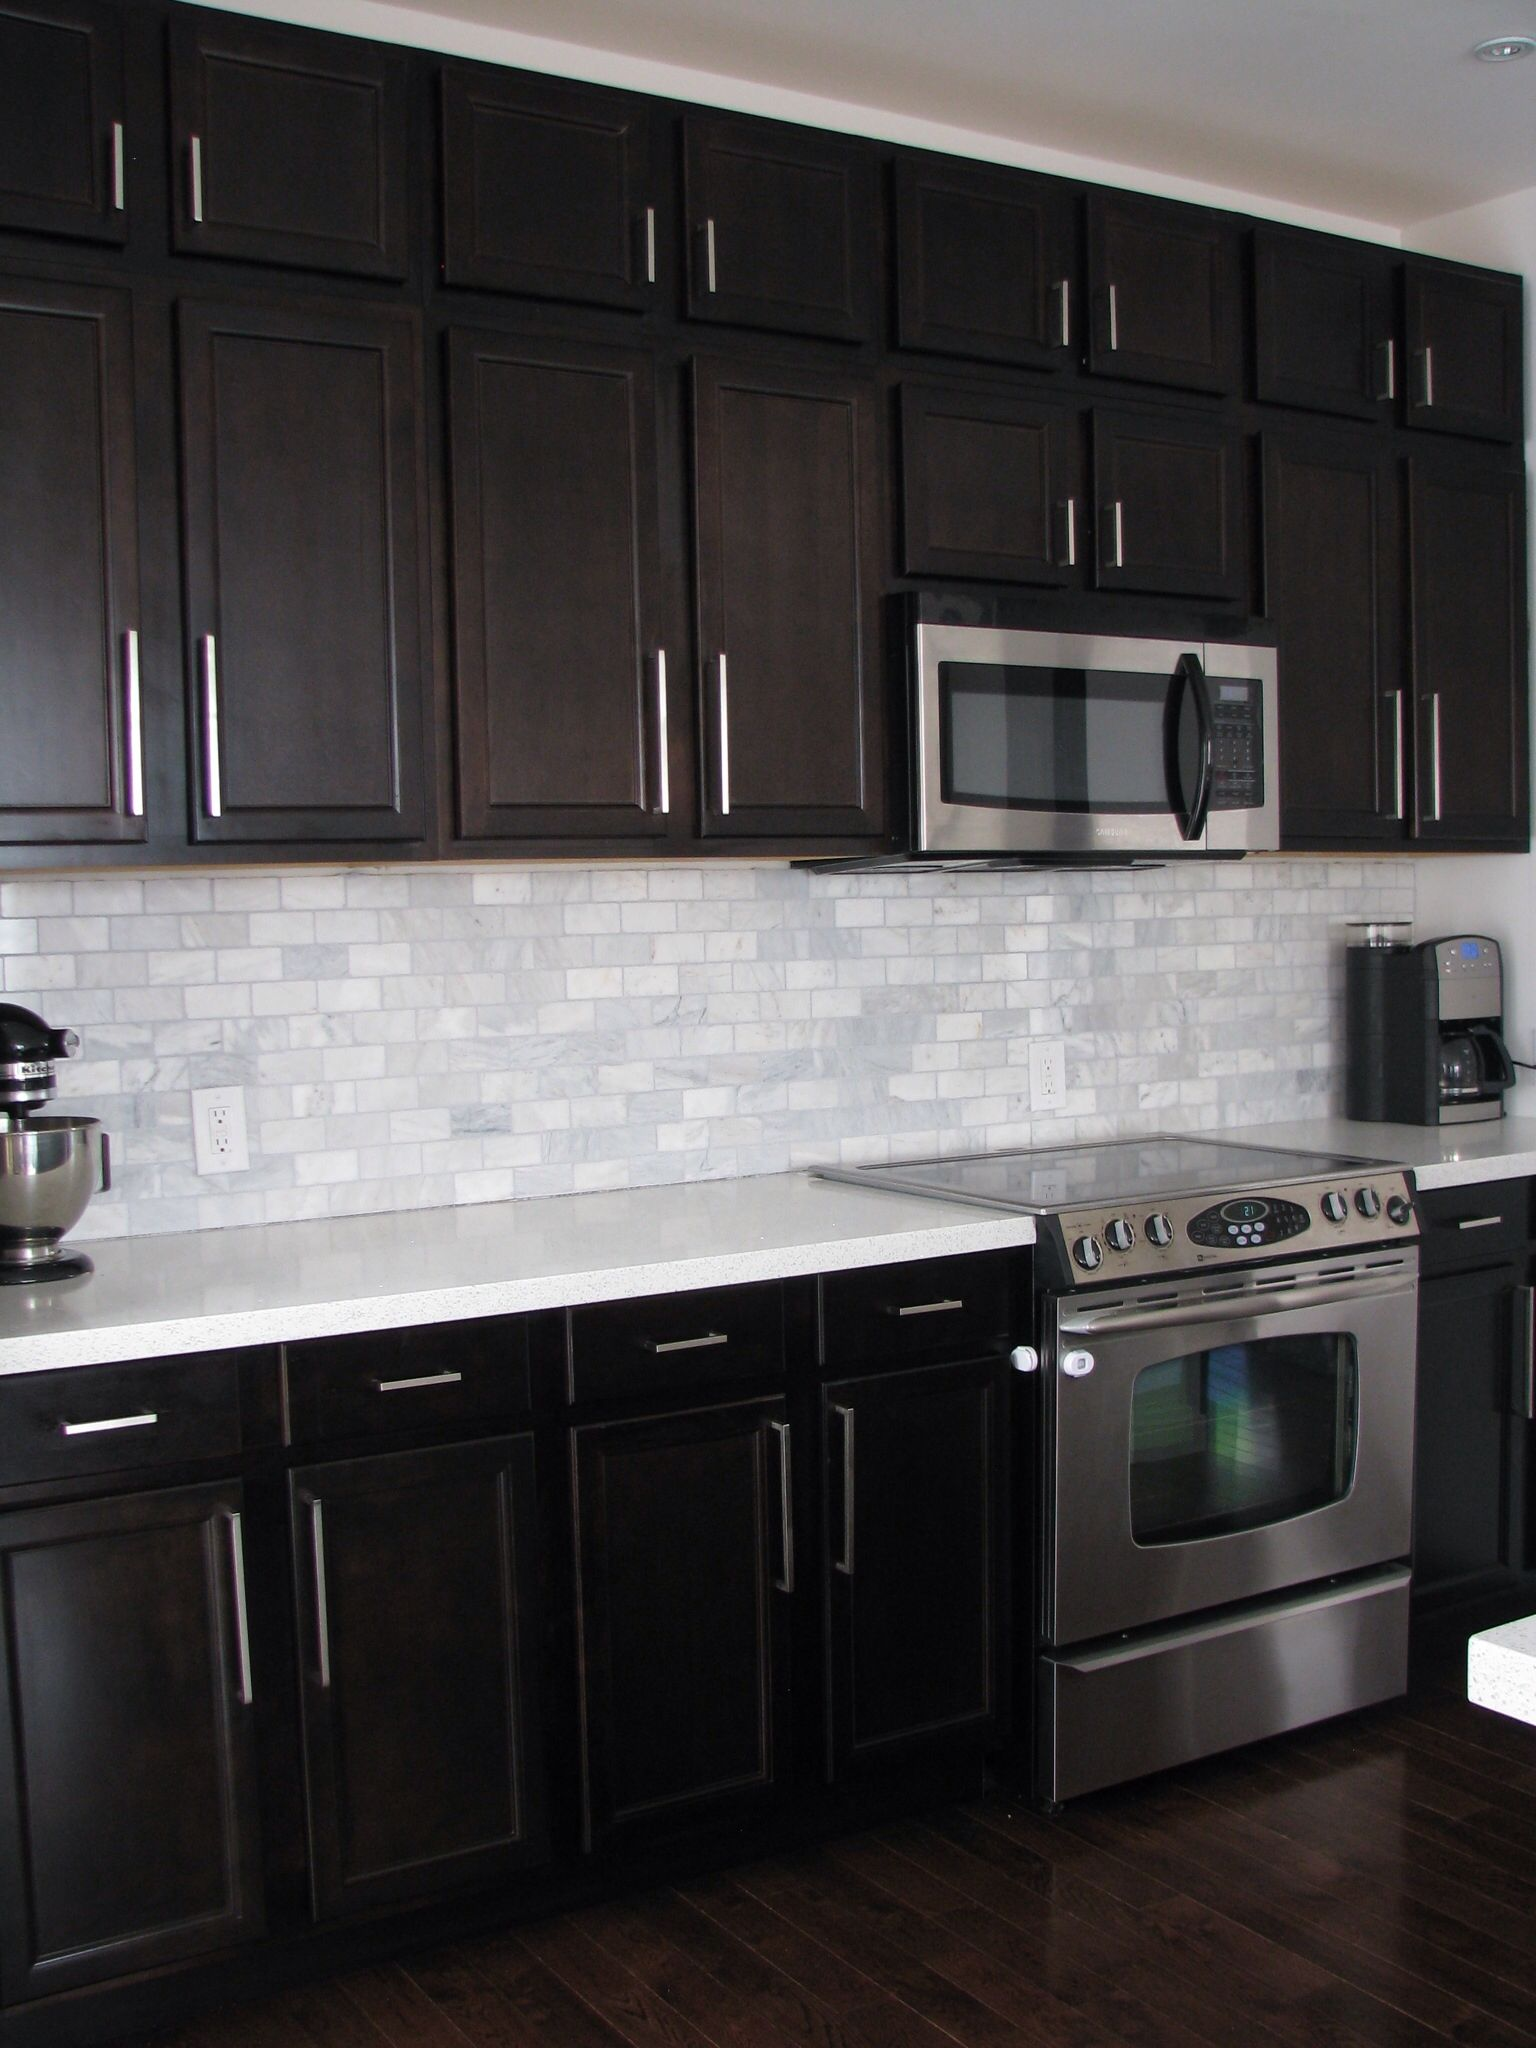 Shine Up Kitchen Cabinets In The Event You Want To Reconstruct Your Kitchen Trendy Kitchen Backsplash Dark Brown Kitchen Cabinets Kitchen Backsplash Designs